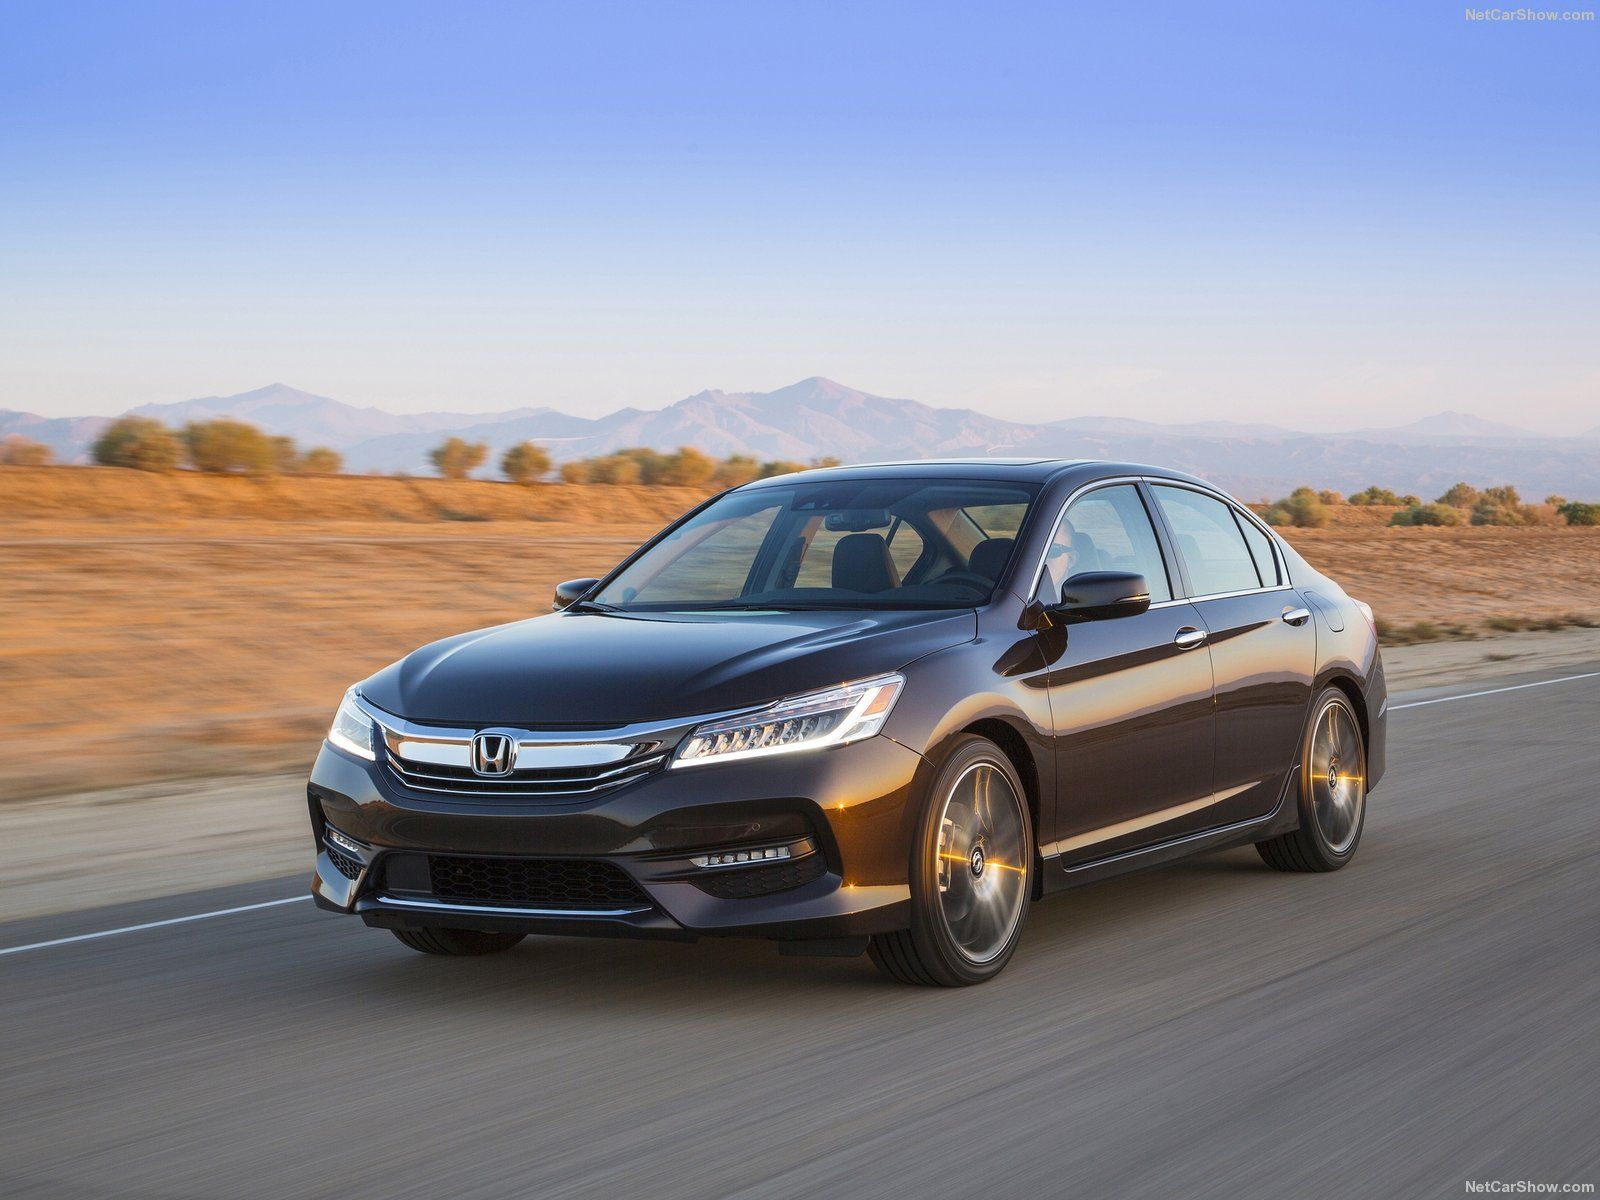 CarsPhoto Best Selling Cars in America 2015 Part 2